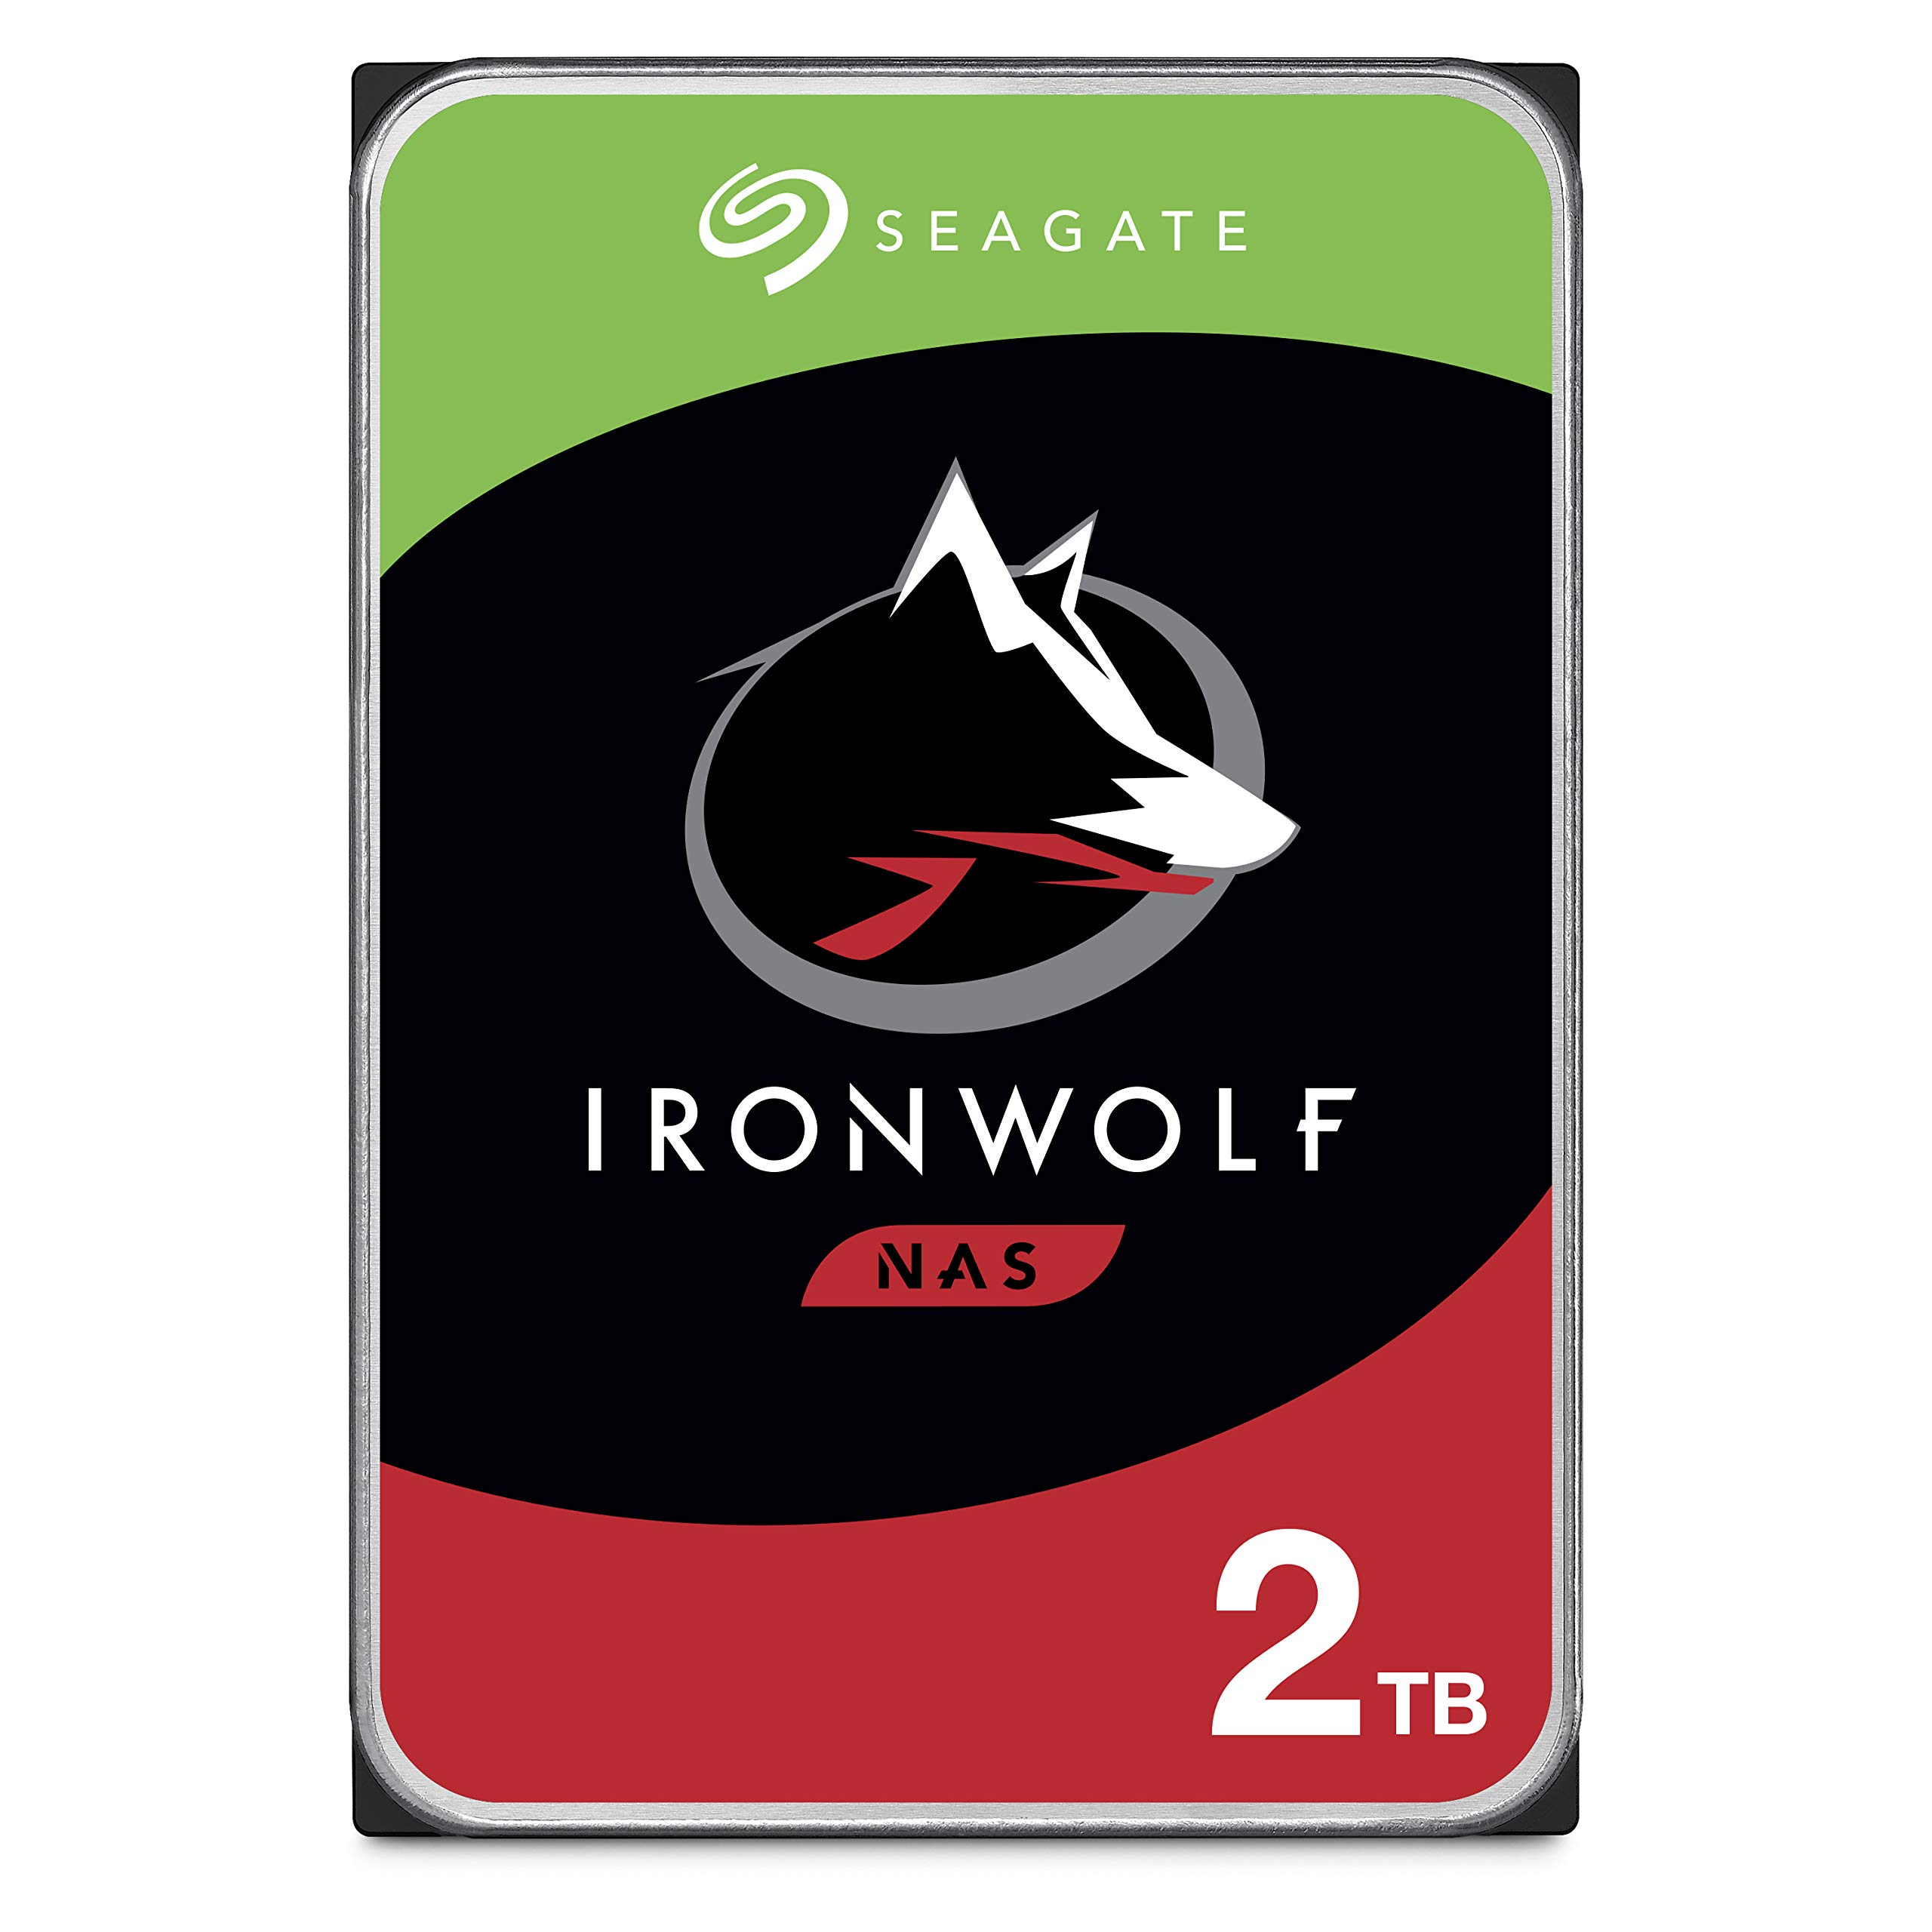 HDD 2TB SATA Seagate IronWolf 2TB NAS 3.5in 6Gb/s 5900 RPM 6